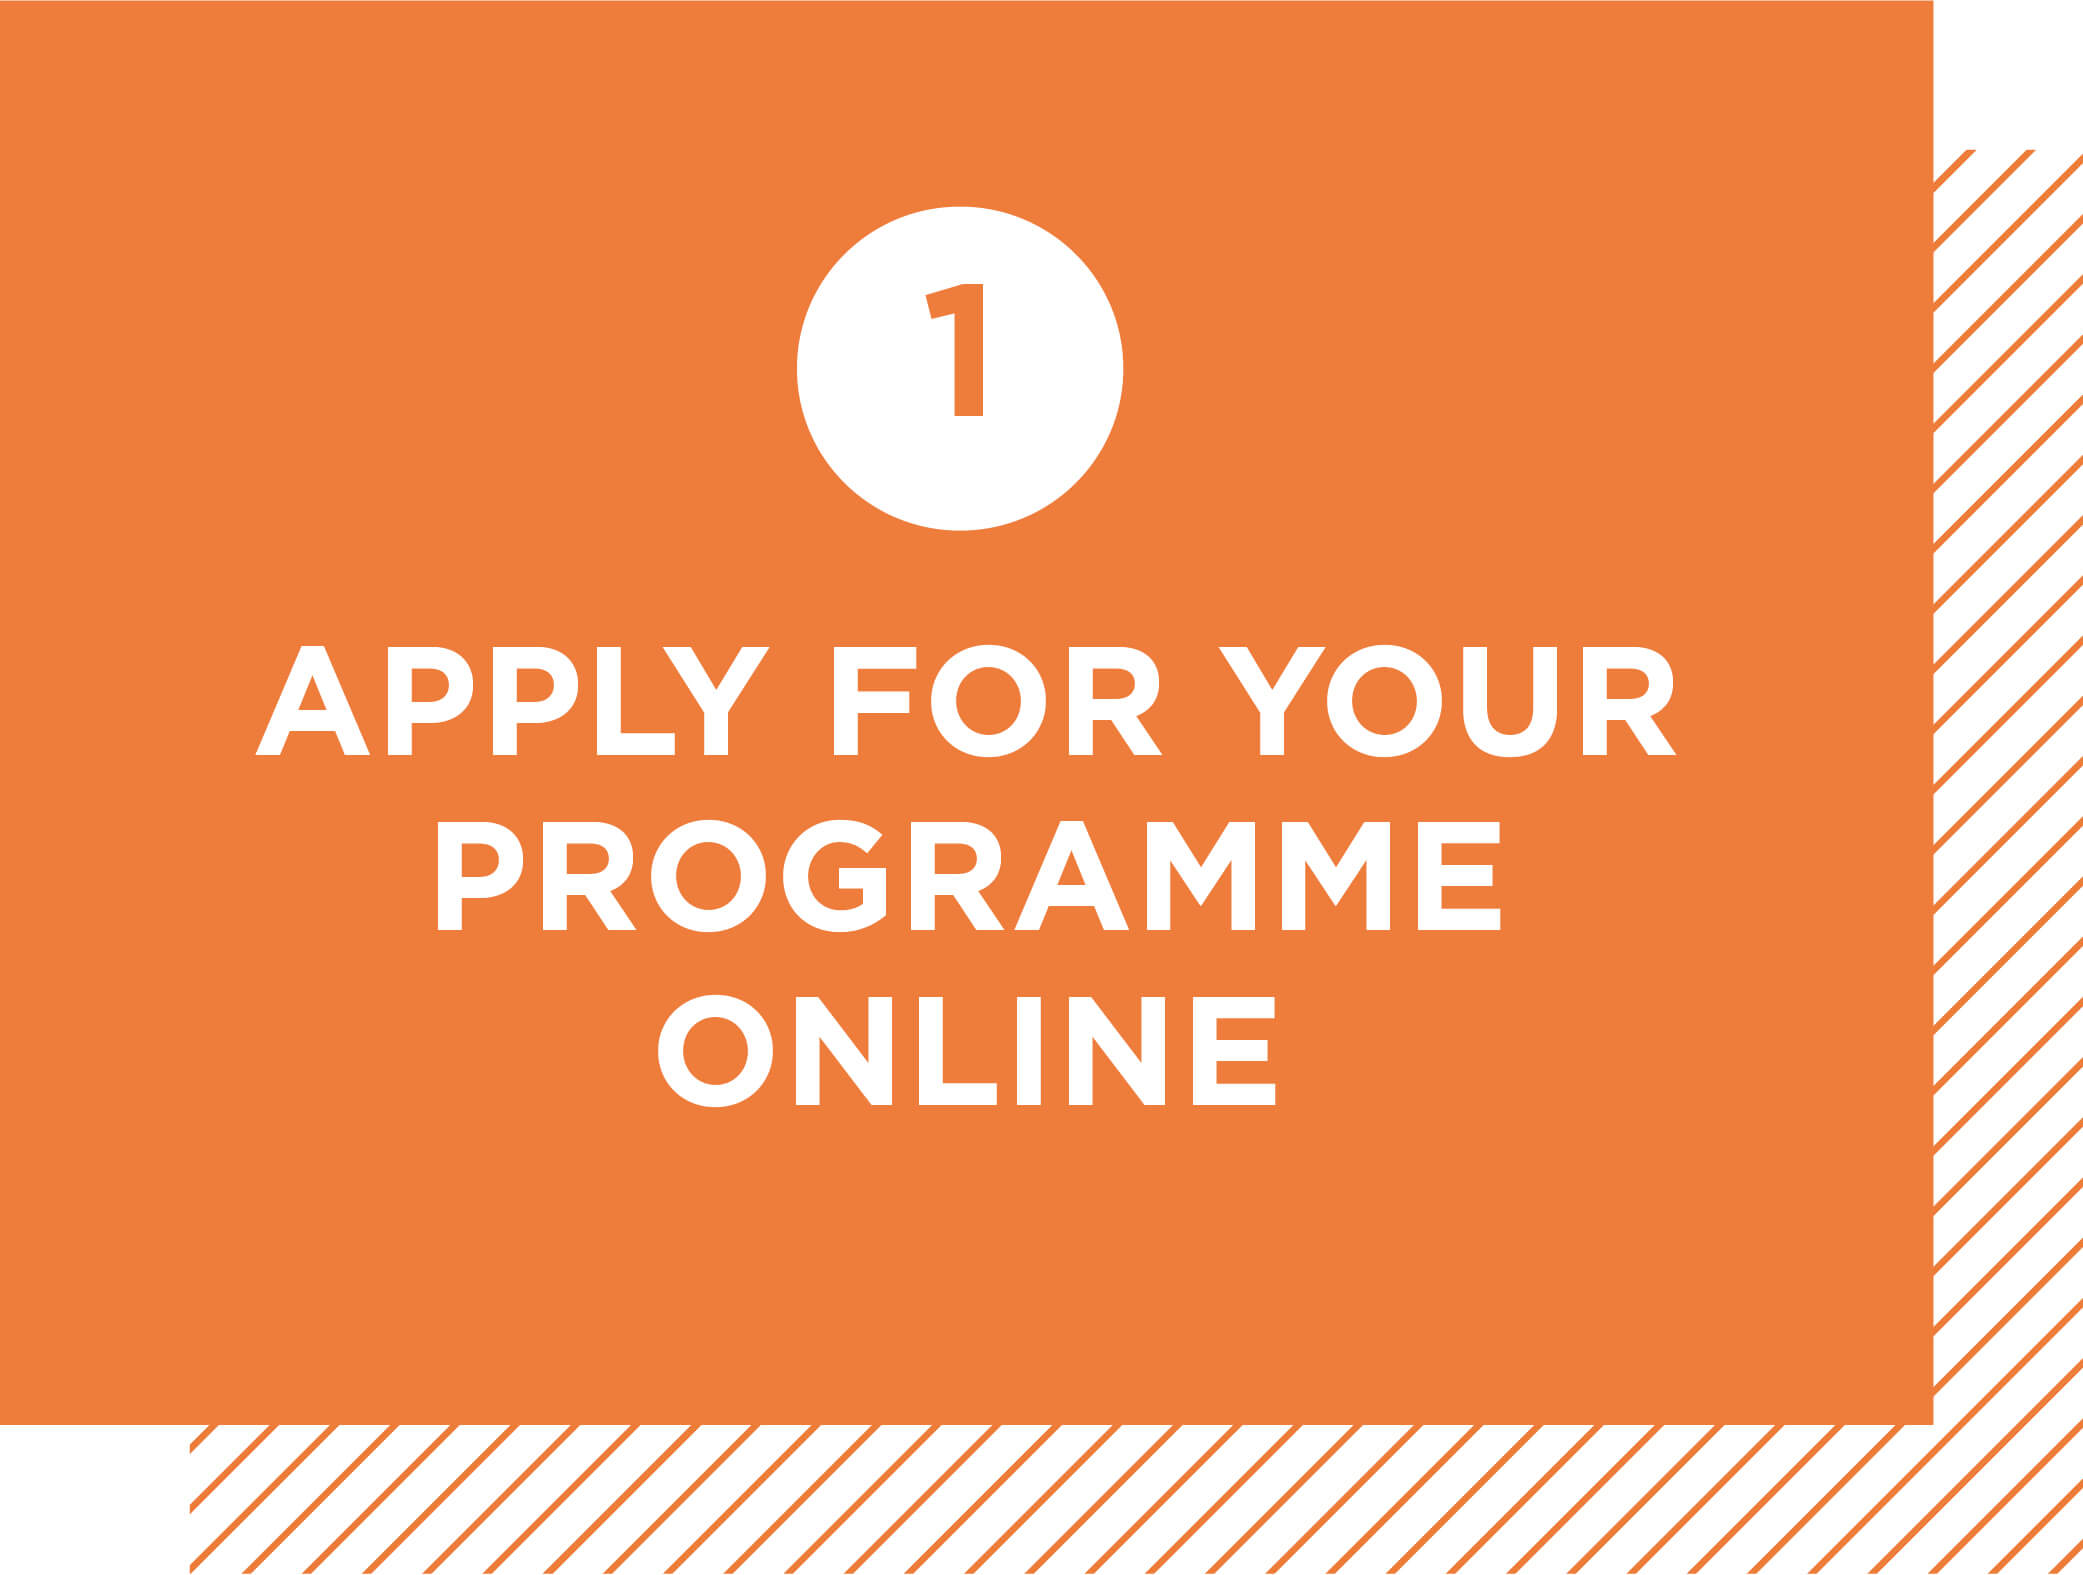 Step 1: Apply for your programme online